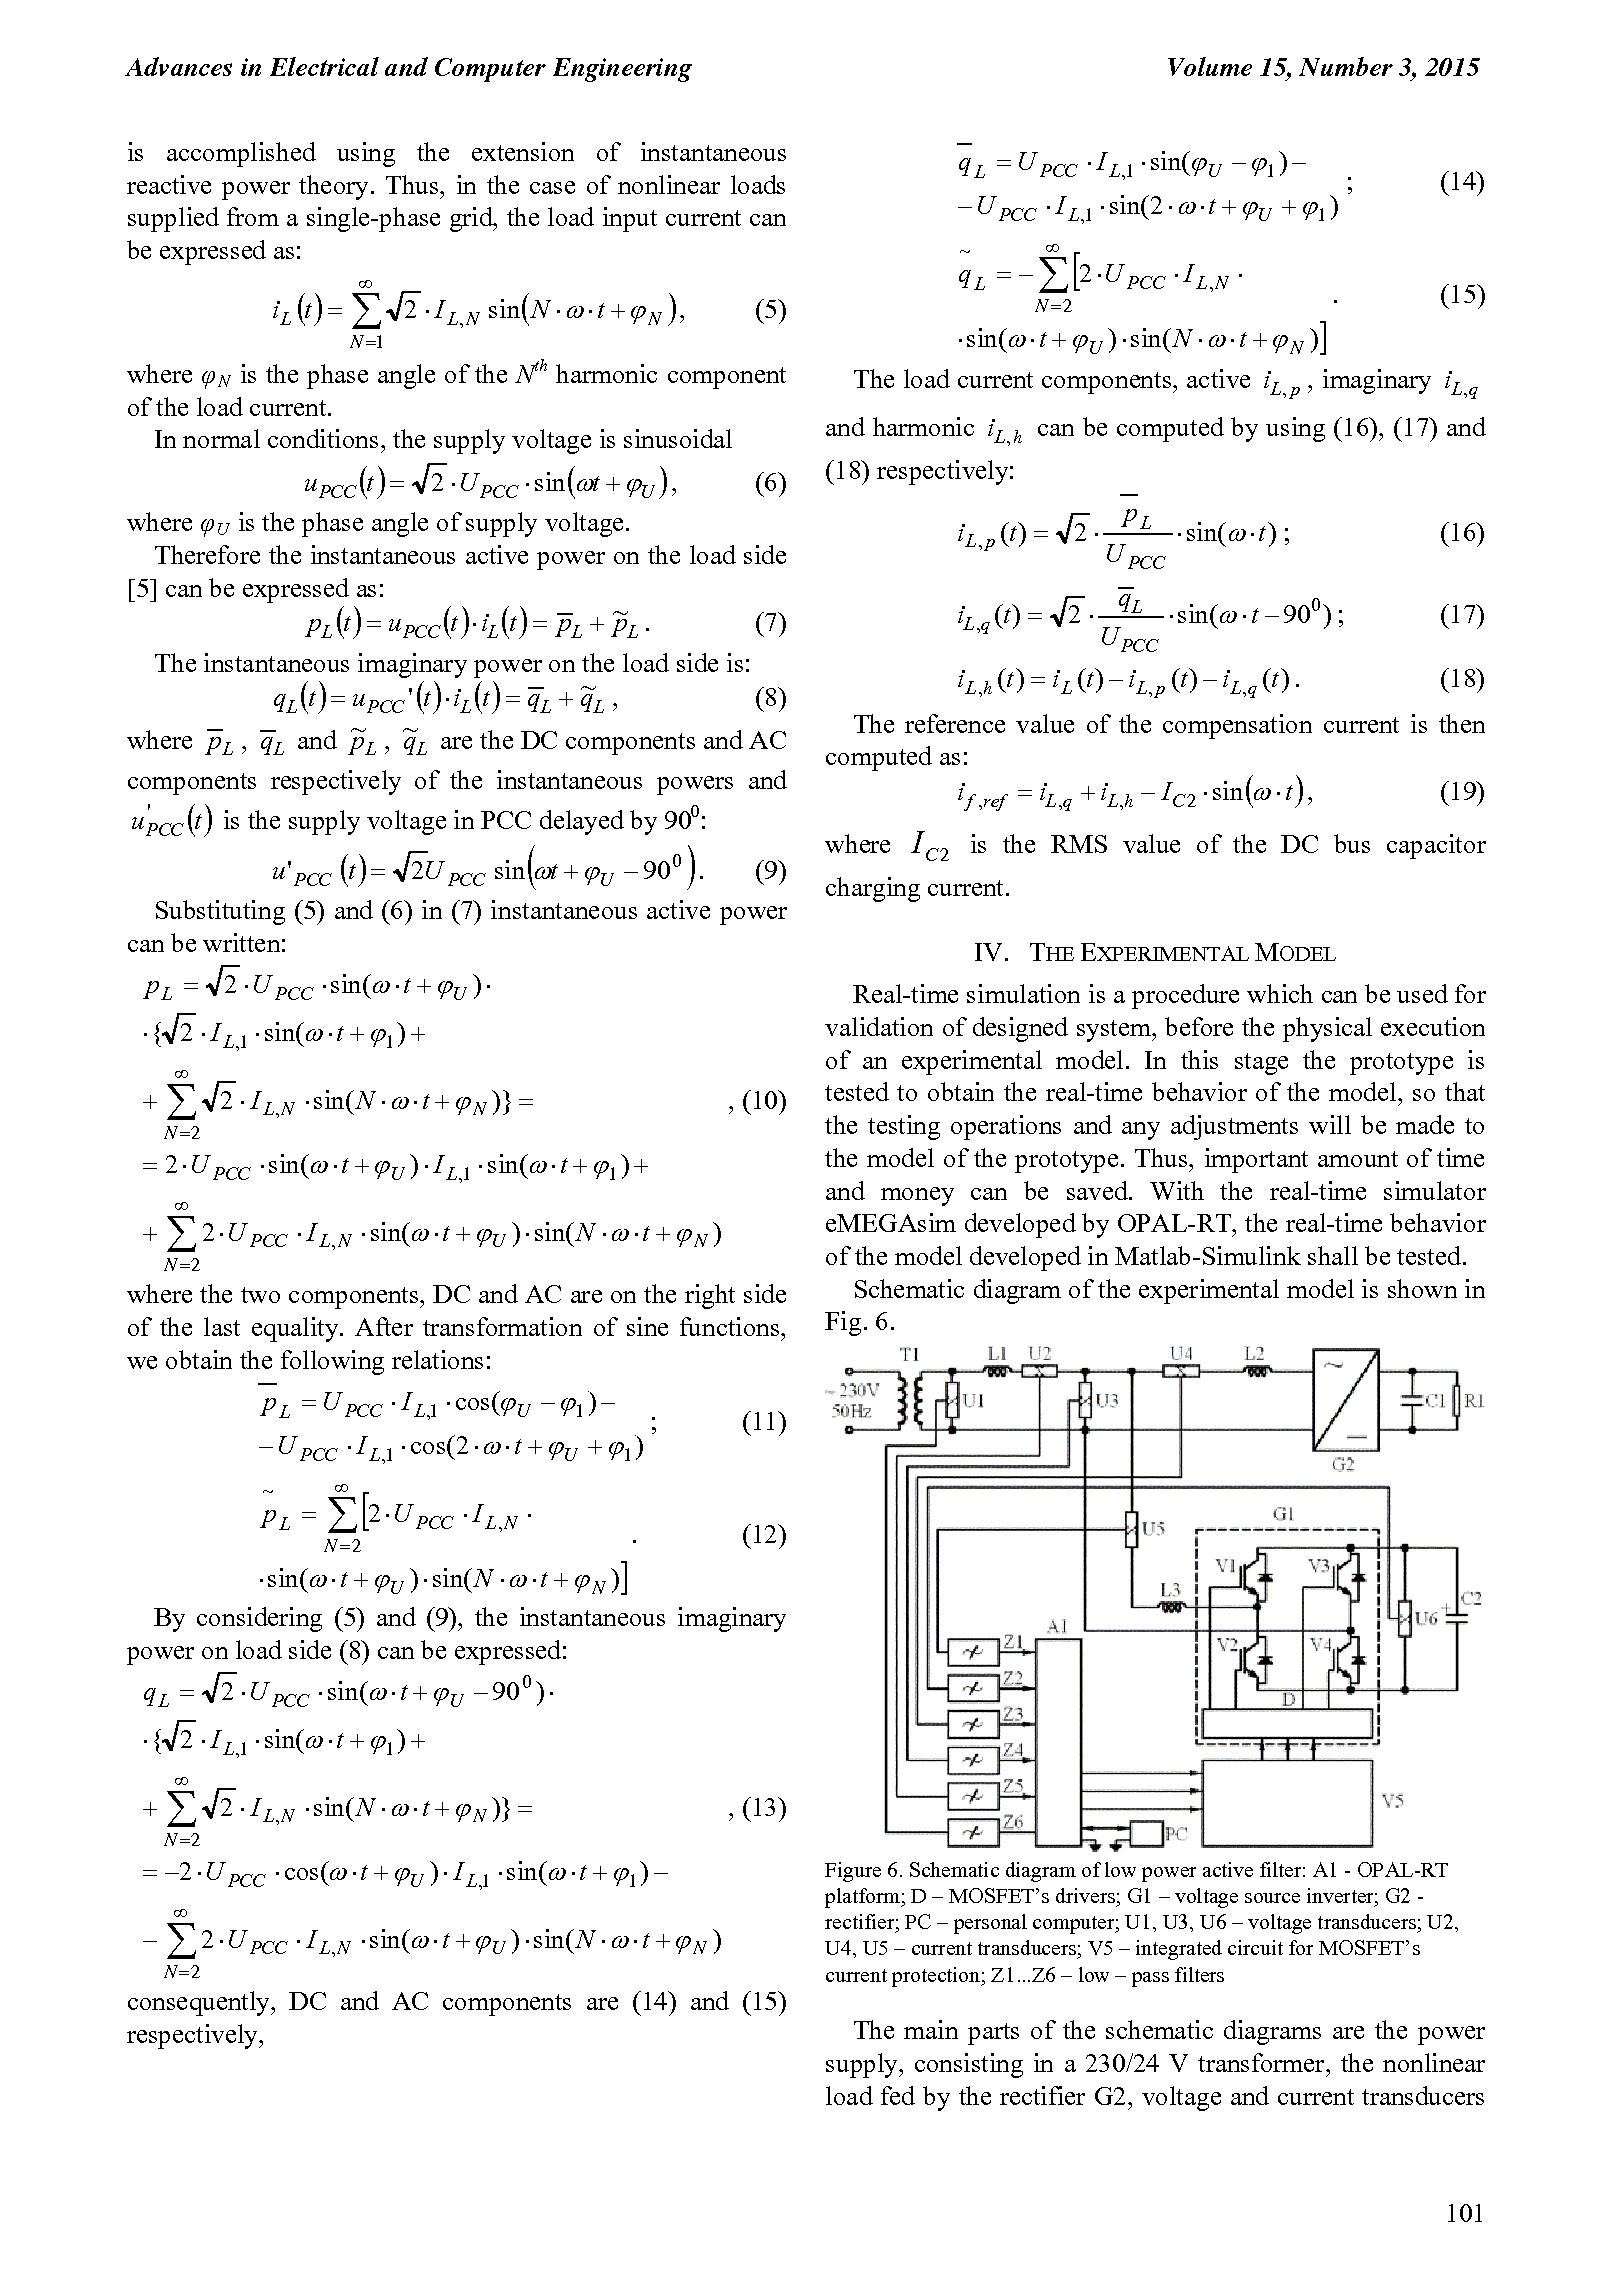 Hysteresis Current Control of the Single-Phase Voltage